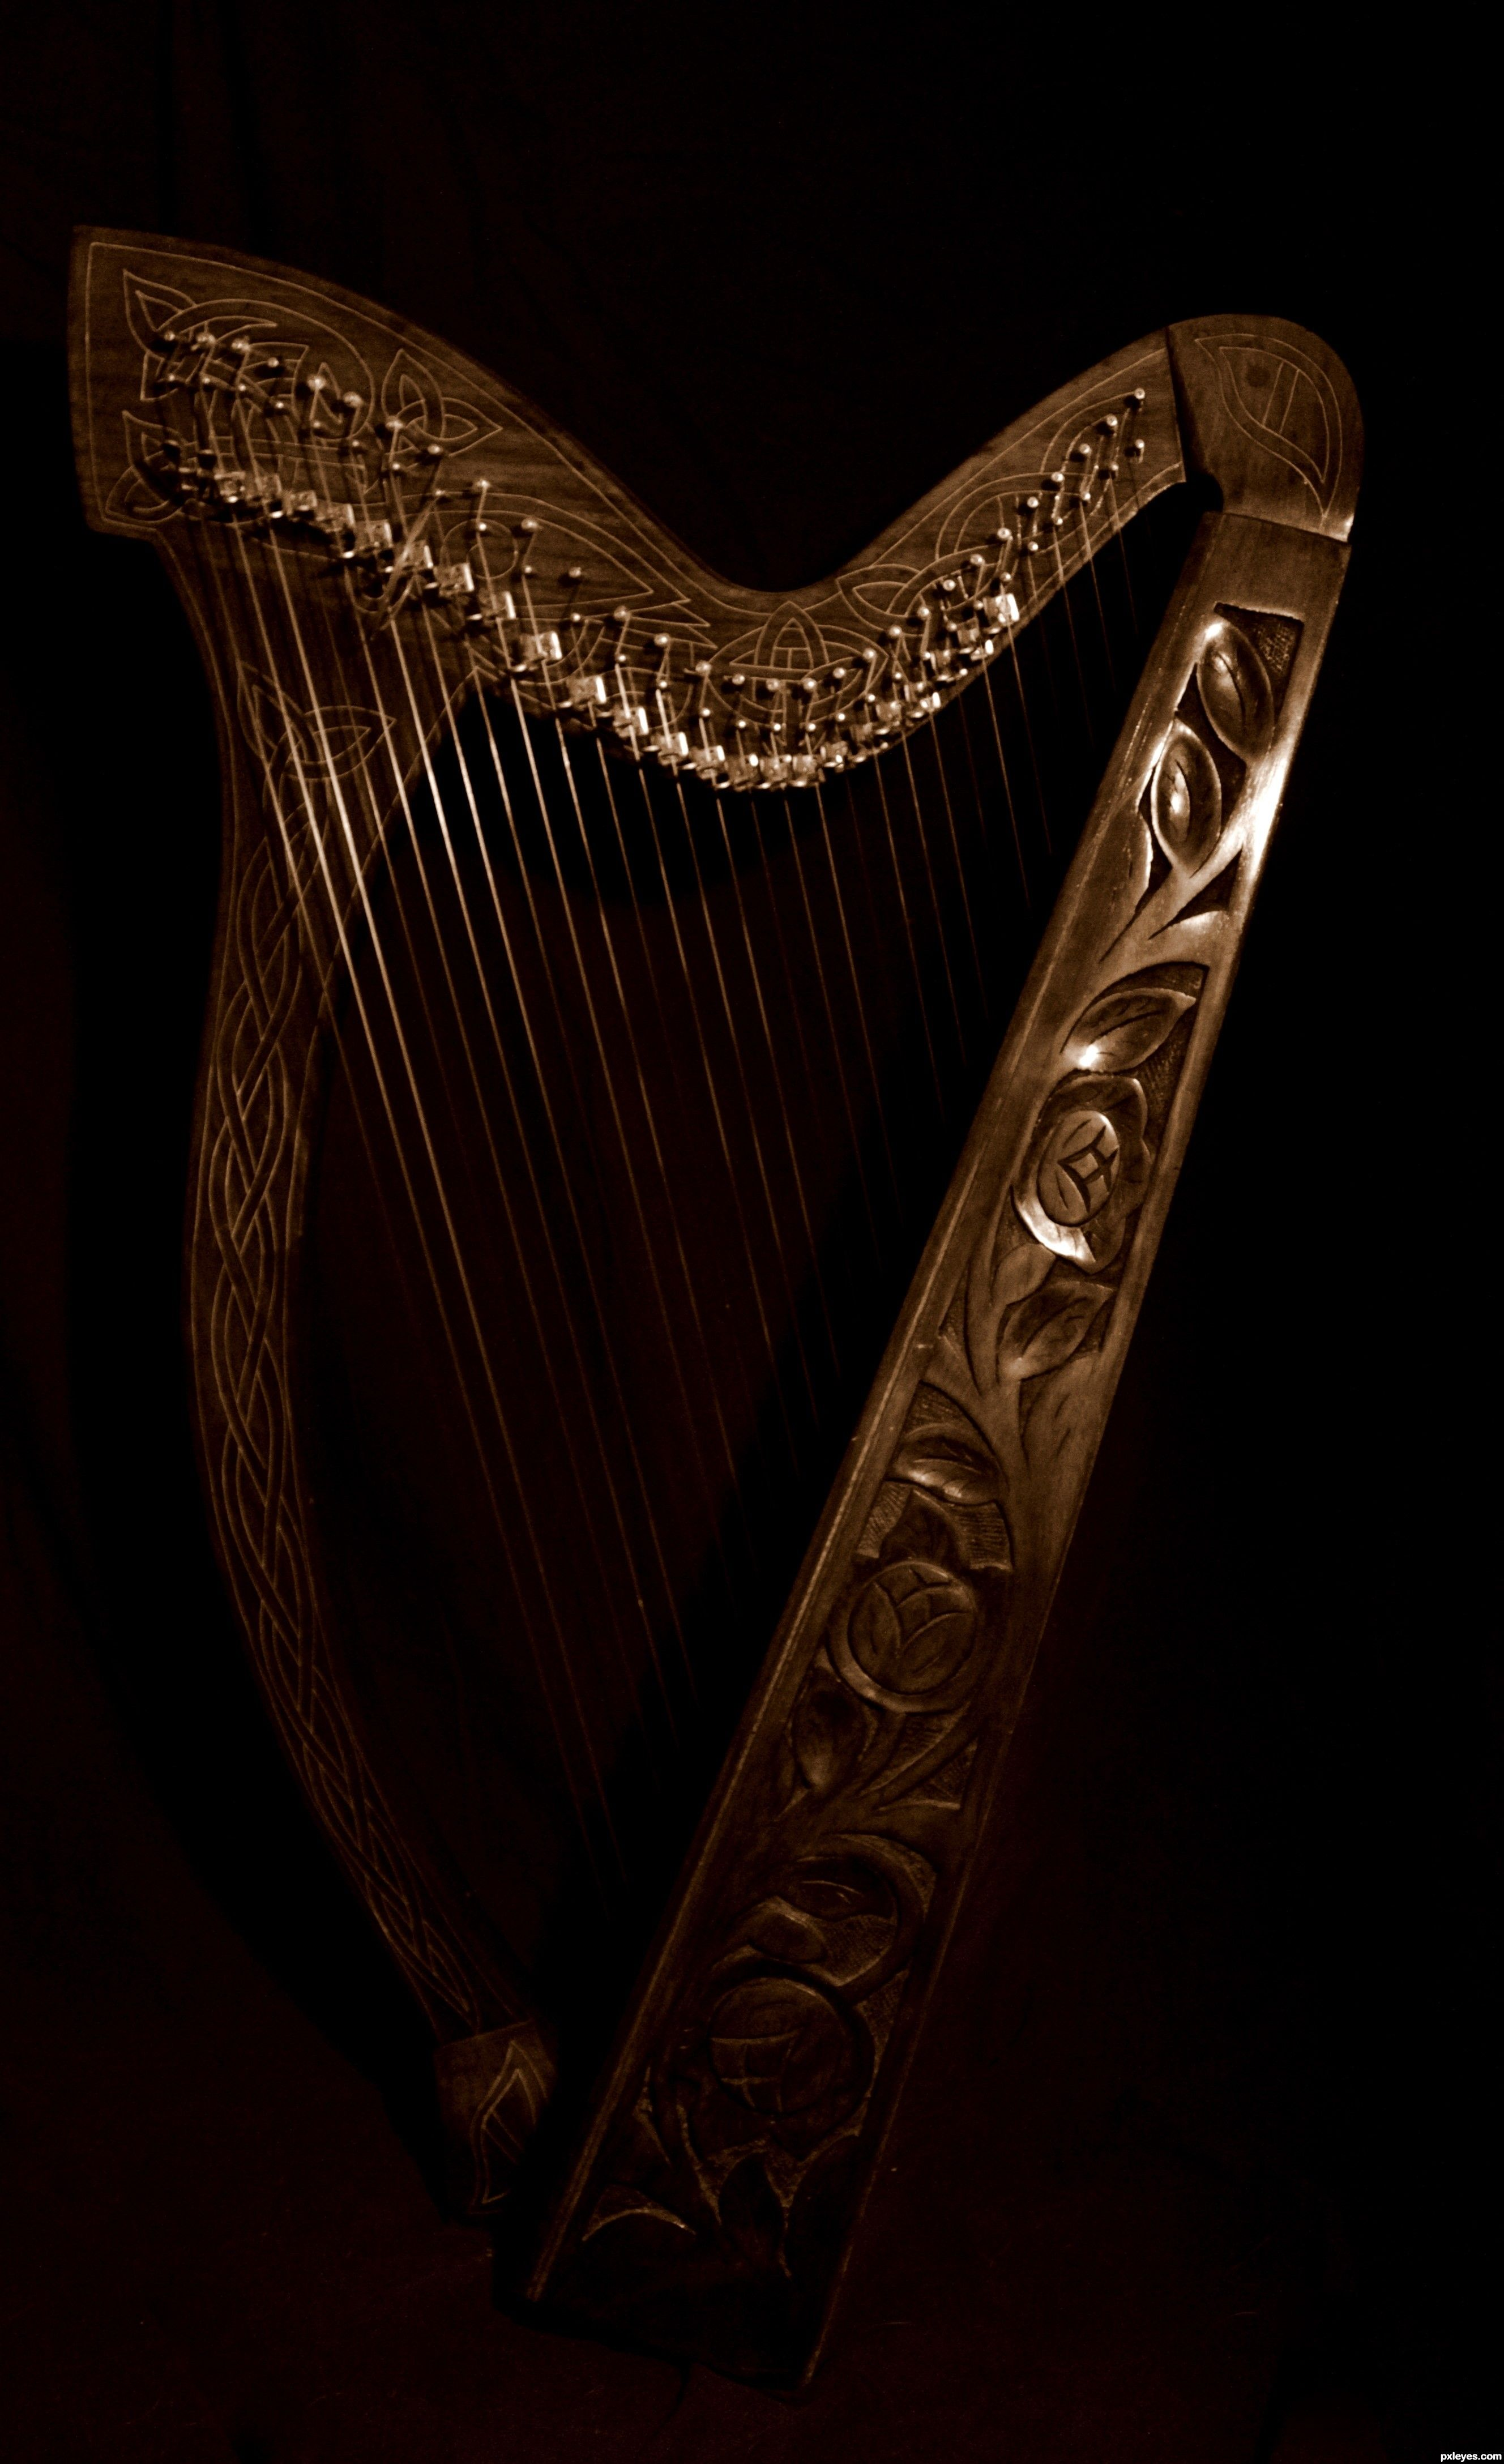 Buy A Harp >> I Hope I Will Have The Opportunity To Buy A Celtic Harp Someday